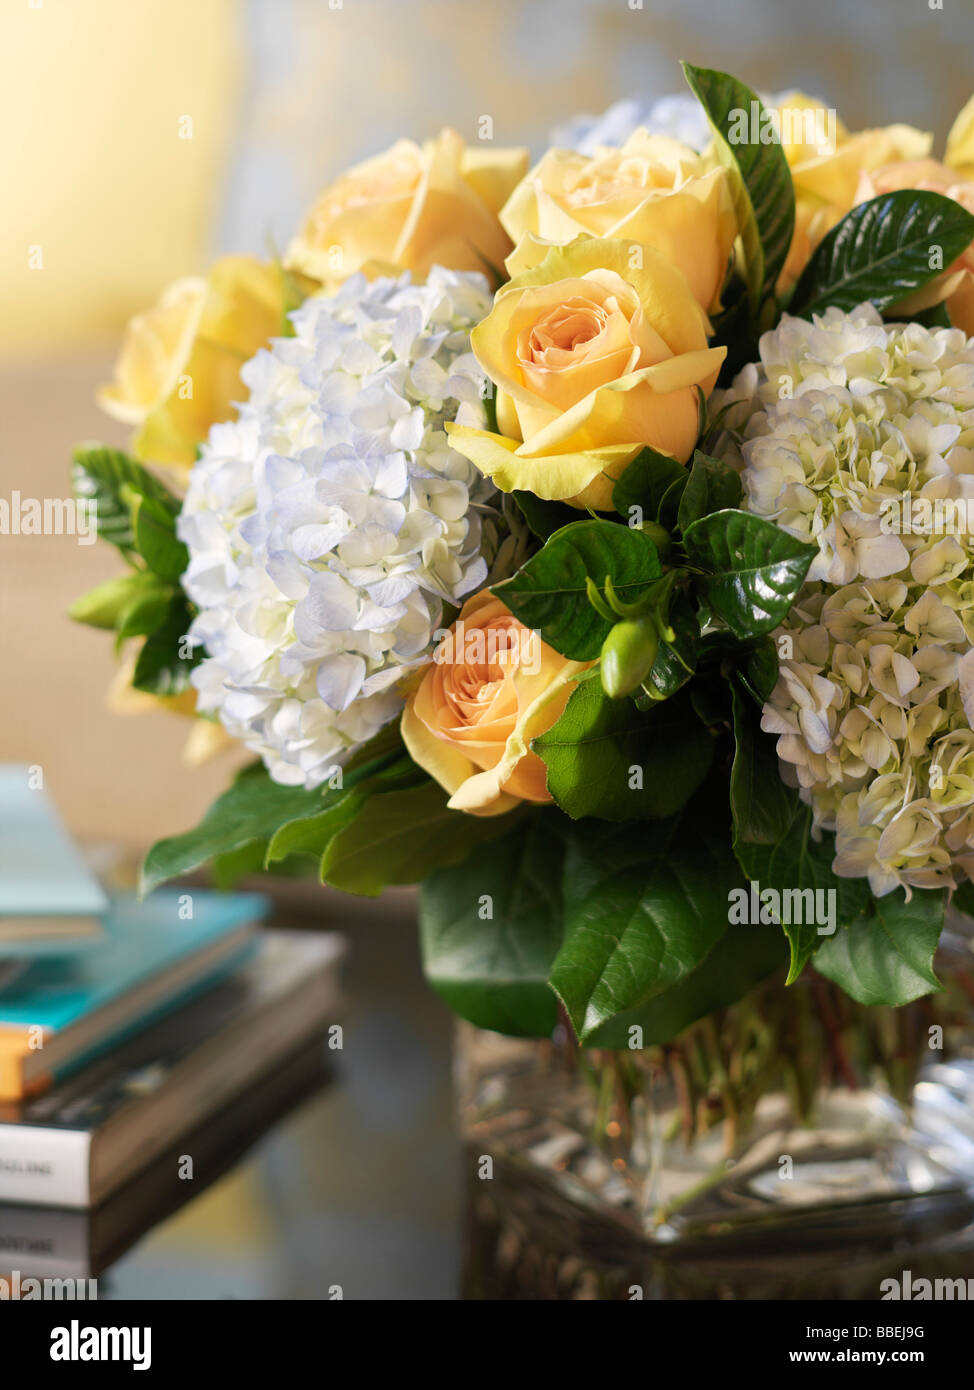 Floral Arrangement on Coffee Table Stock Photo